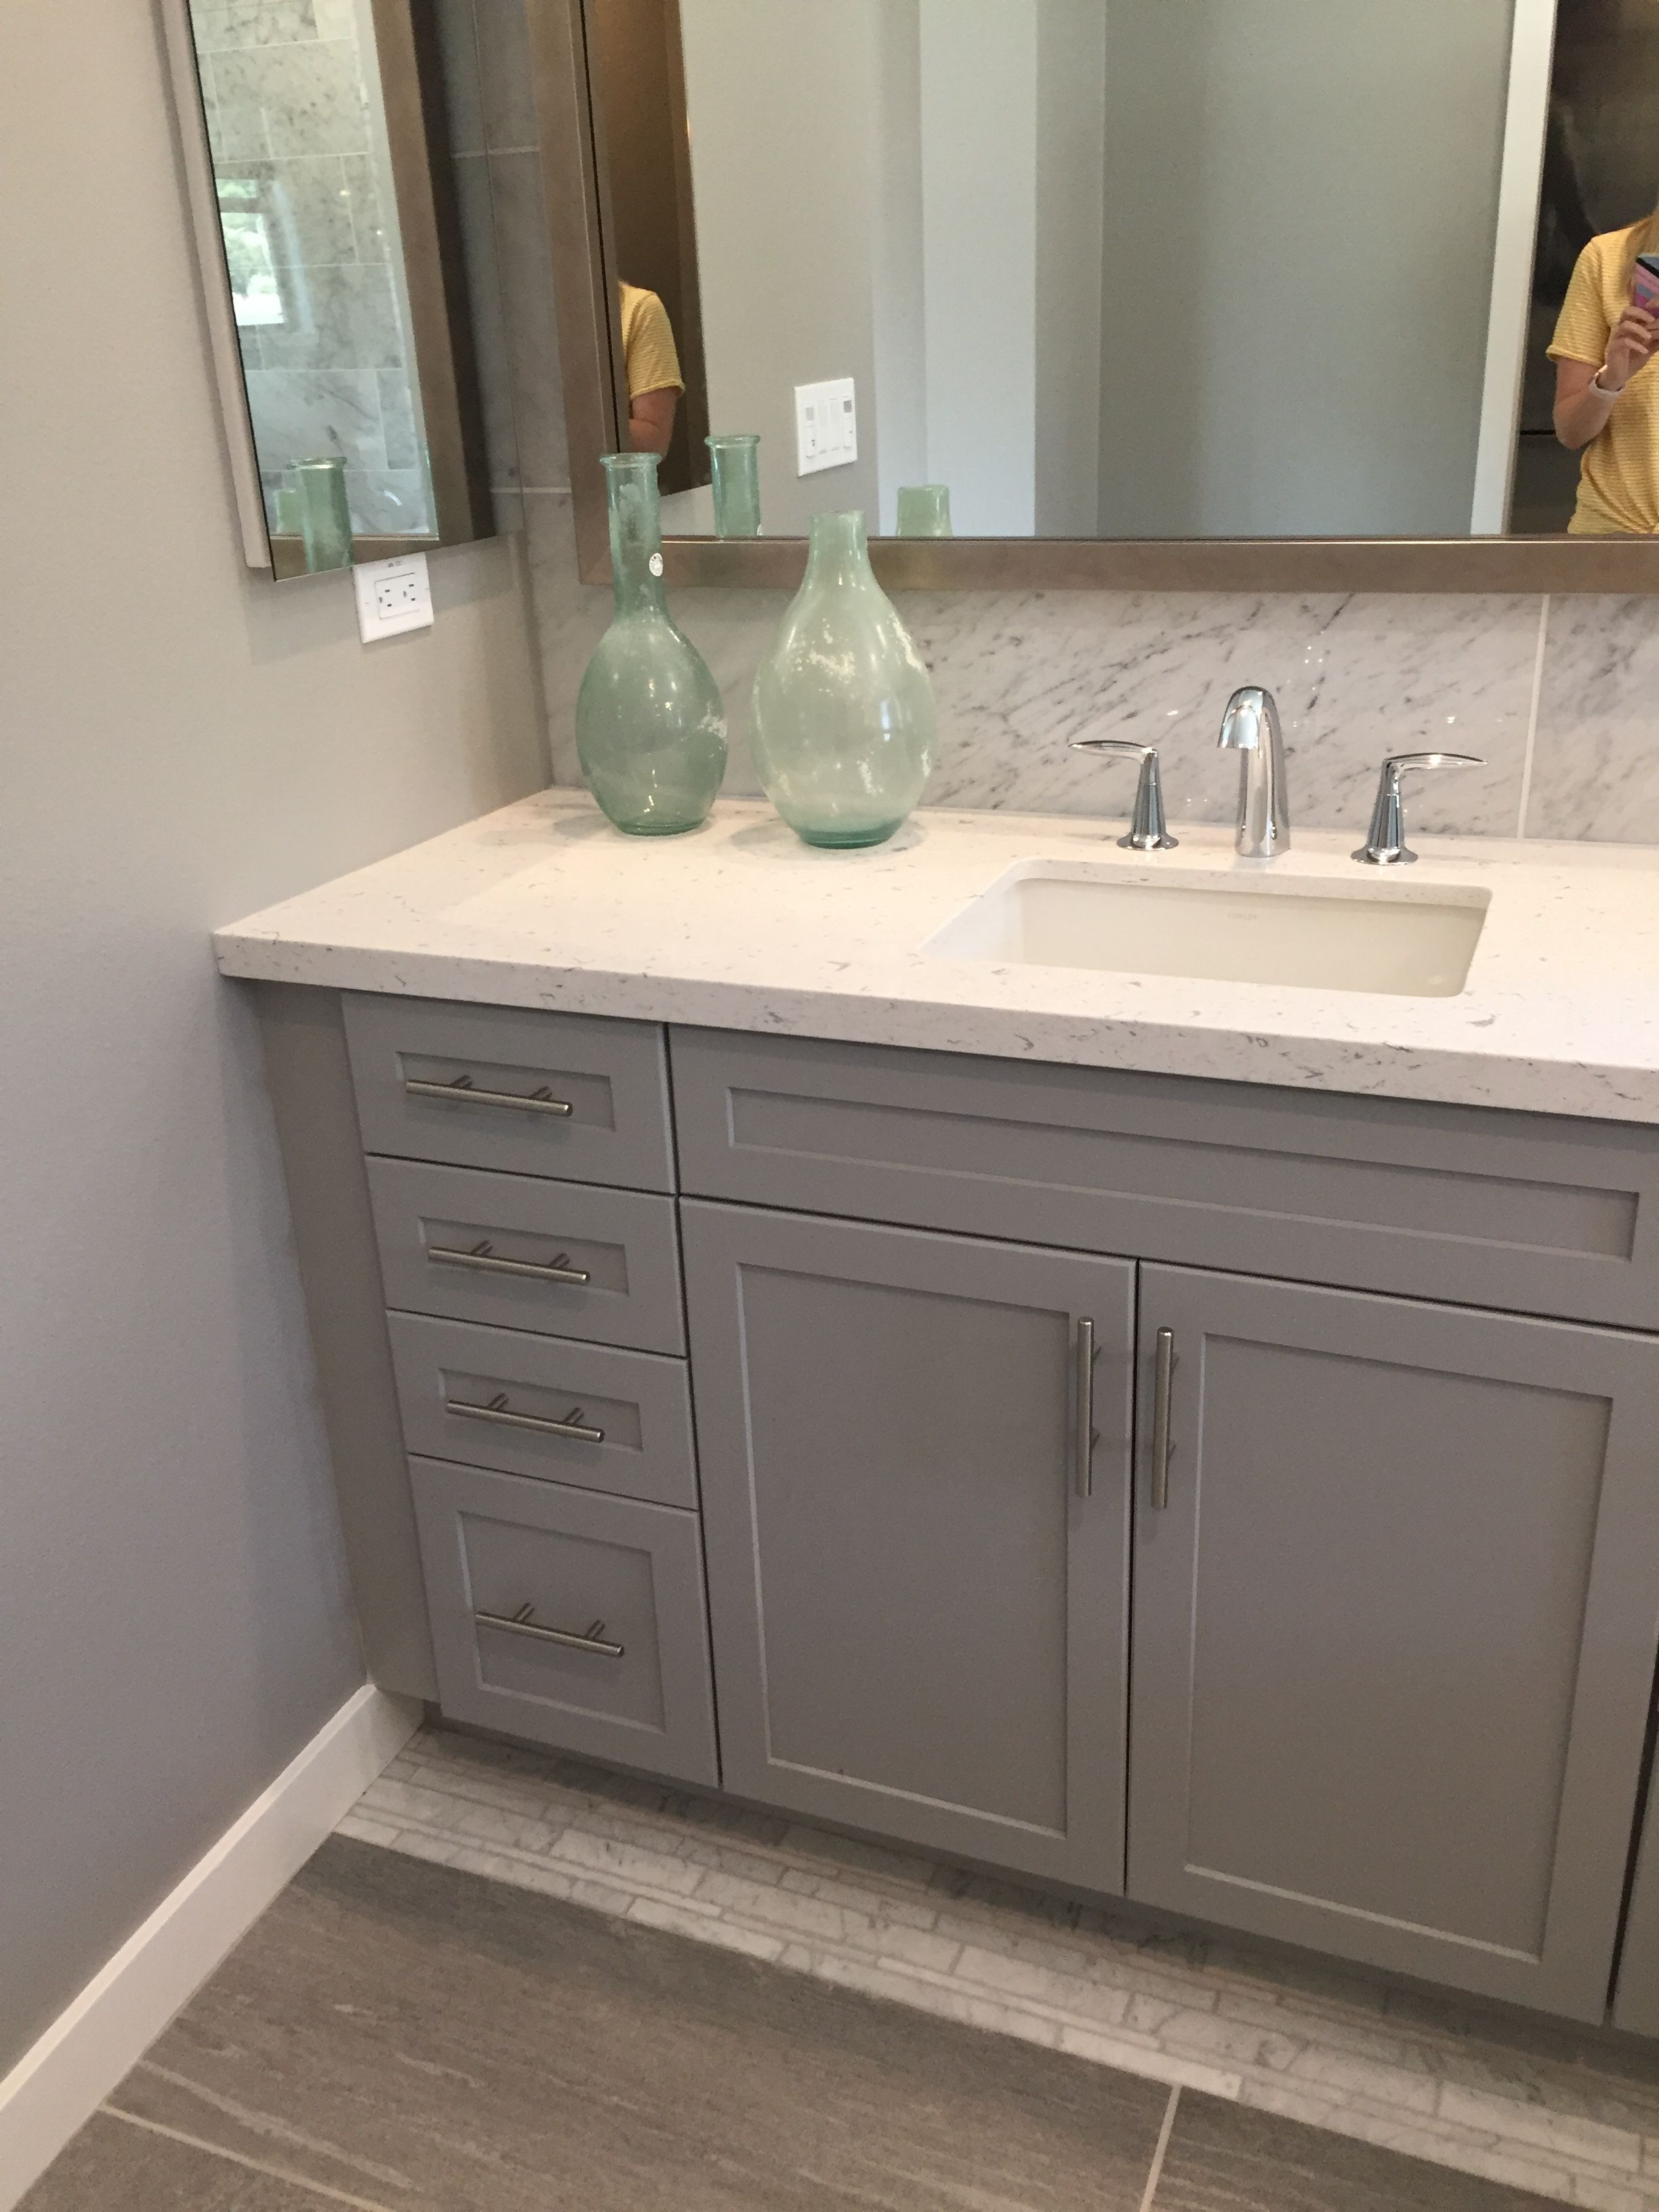 keep counter tops paint white with counter paint kit on replacement countertops for bathroom vanity id=86482